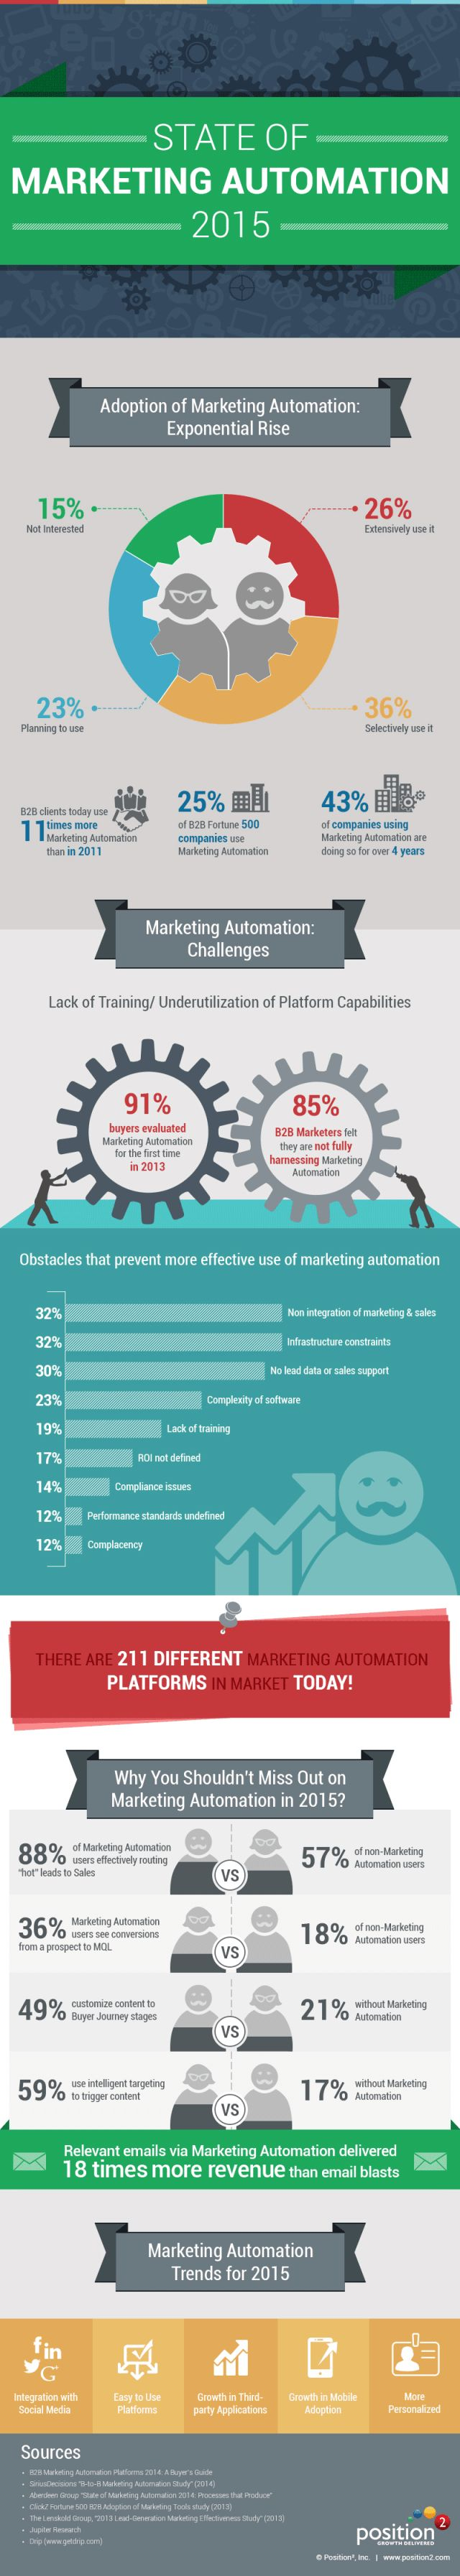 The State of Marketing Automation 2015